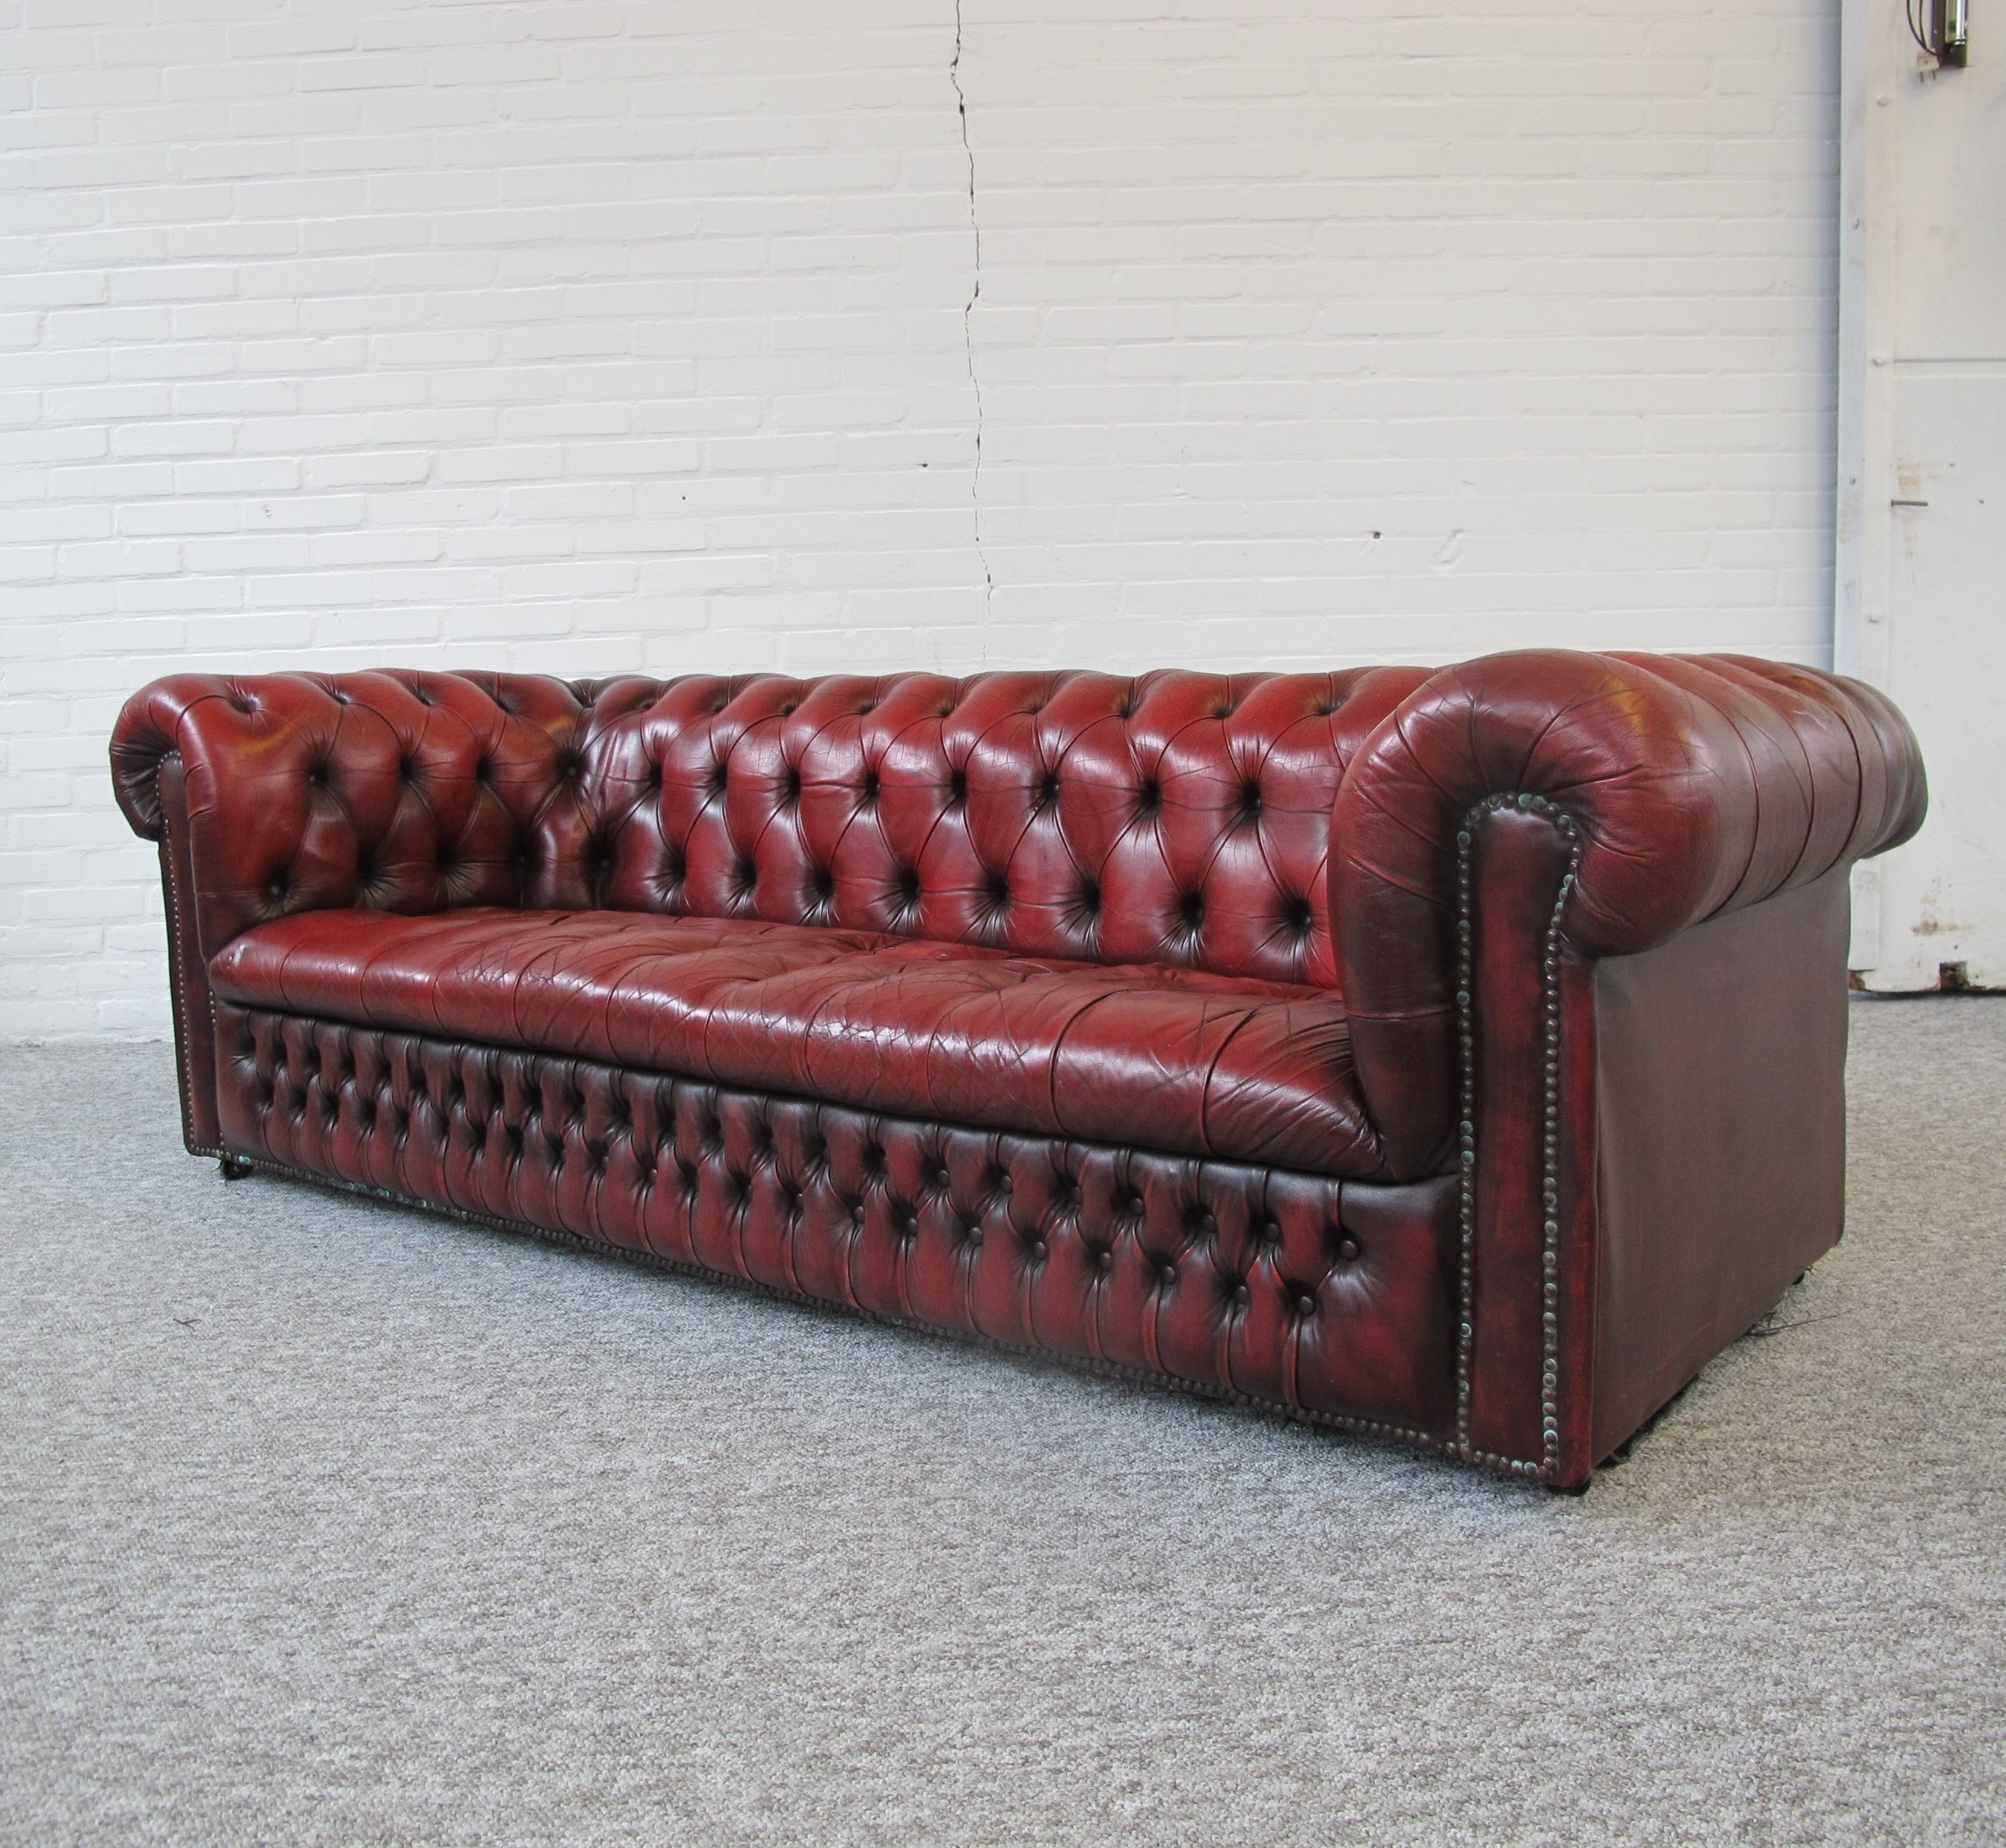 chesterfield sofa oxblood. Black Bedroom Furniture Sets. Home Design Ideas